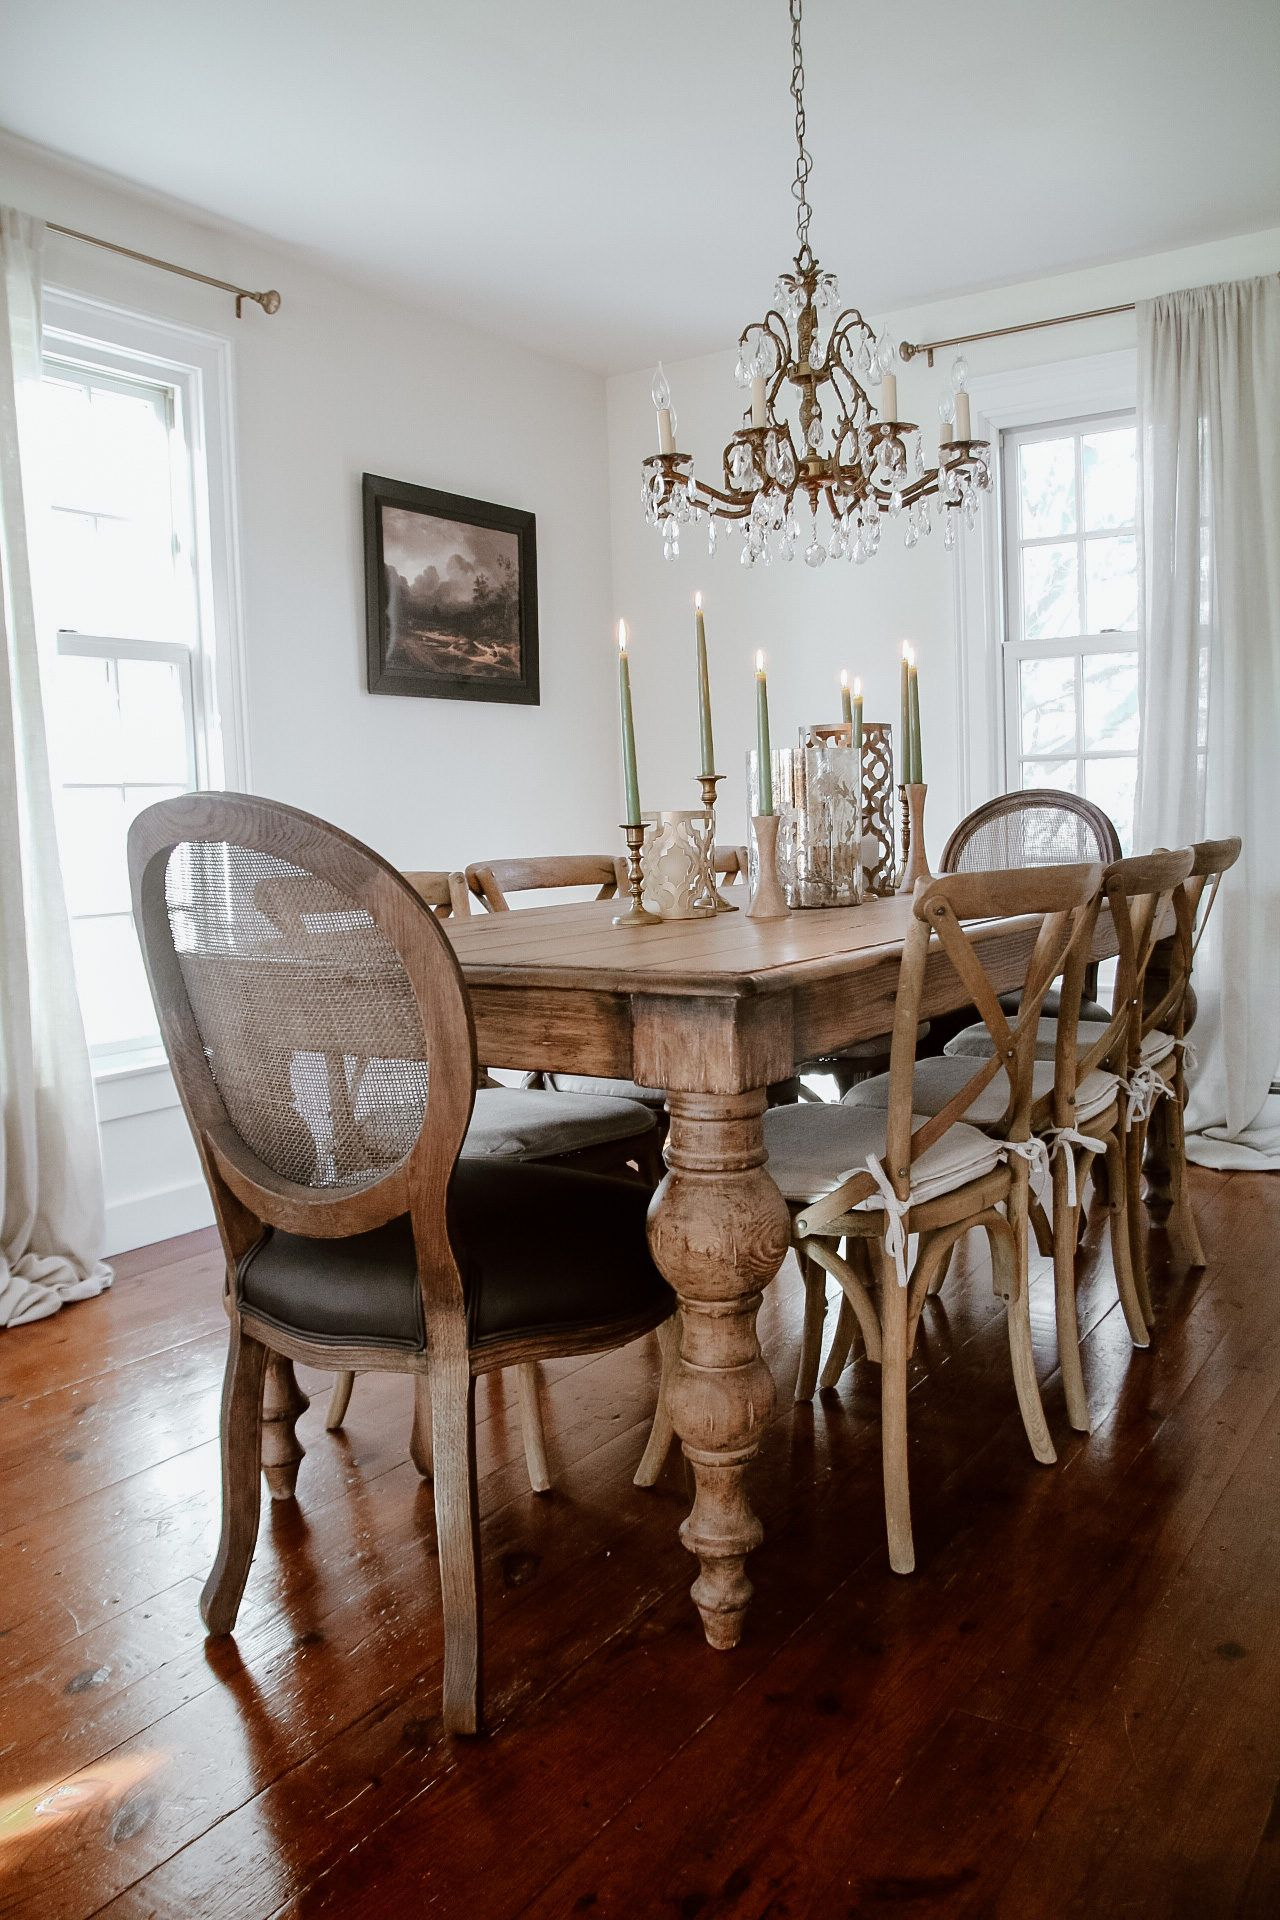 Francis Dining Table Arhaus Dining Table Dining Table Dimensions Luxury Dining Room Pictures of dining room tables